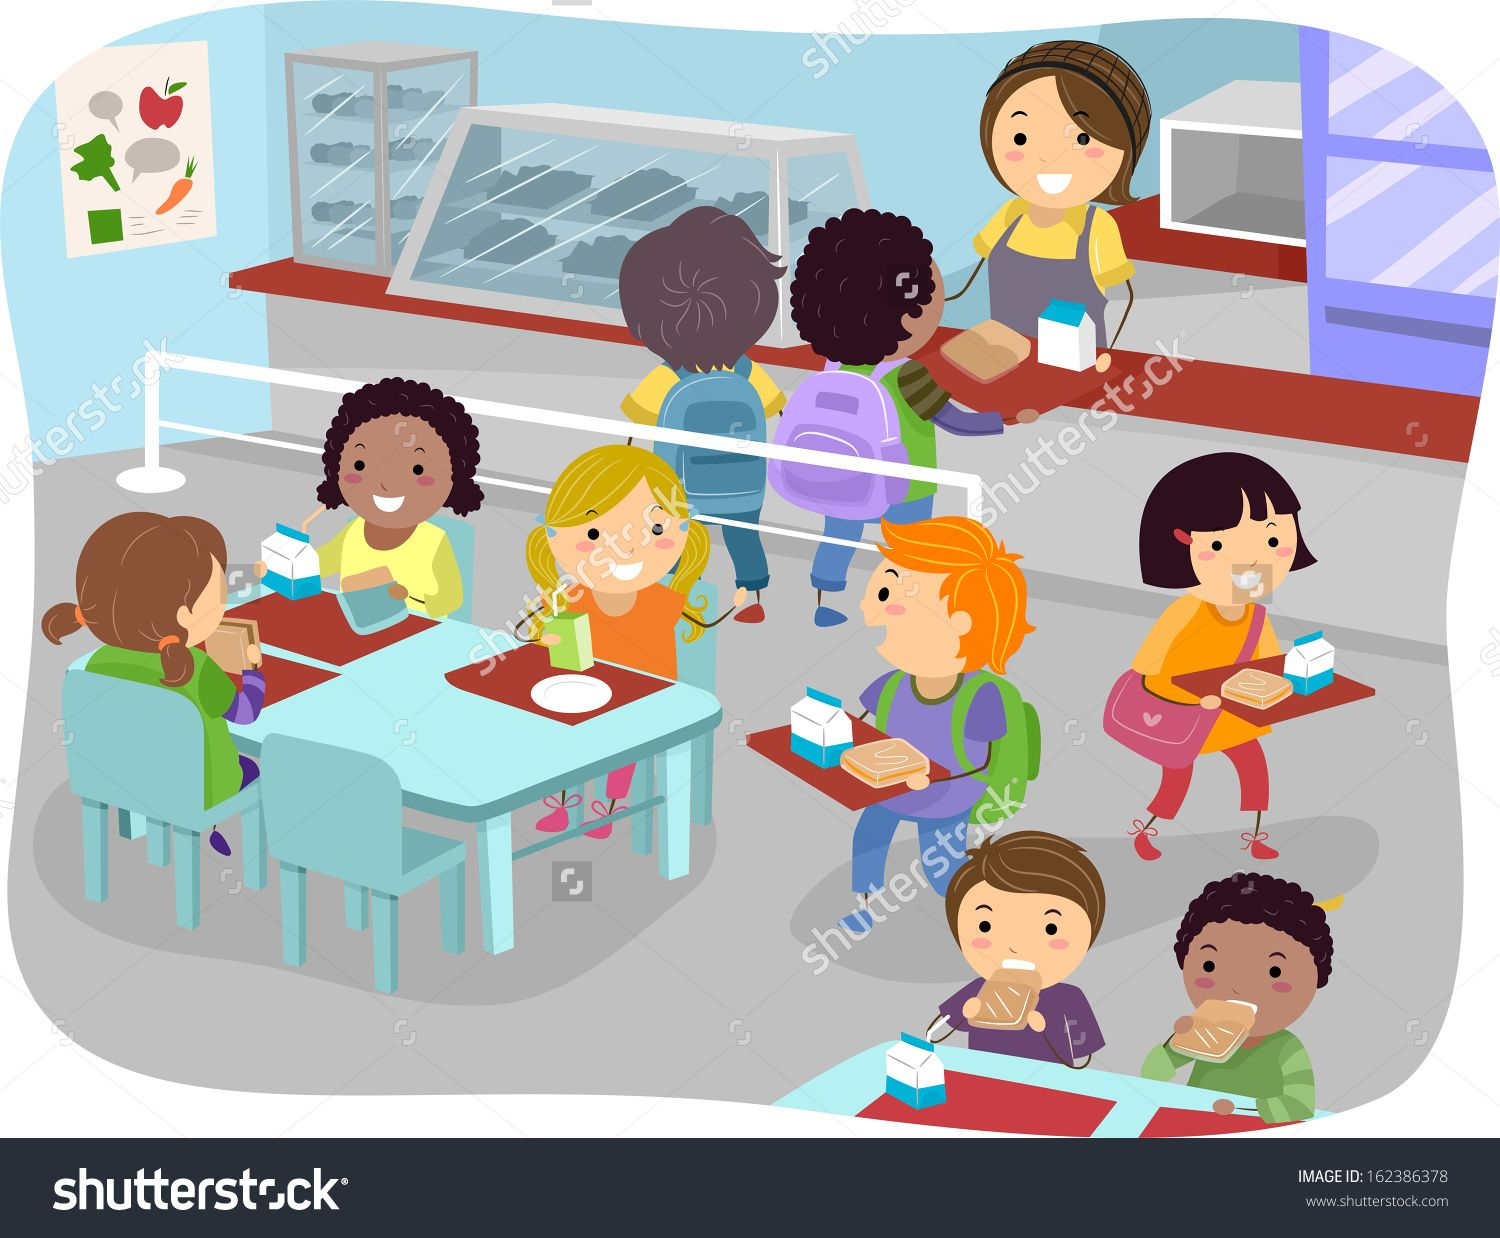 Clipart of school children getting their lunch image free download Illustration Of Kids In A Canteen Buying And Eating Lunch ... image free download